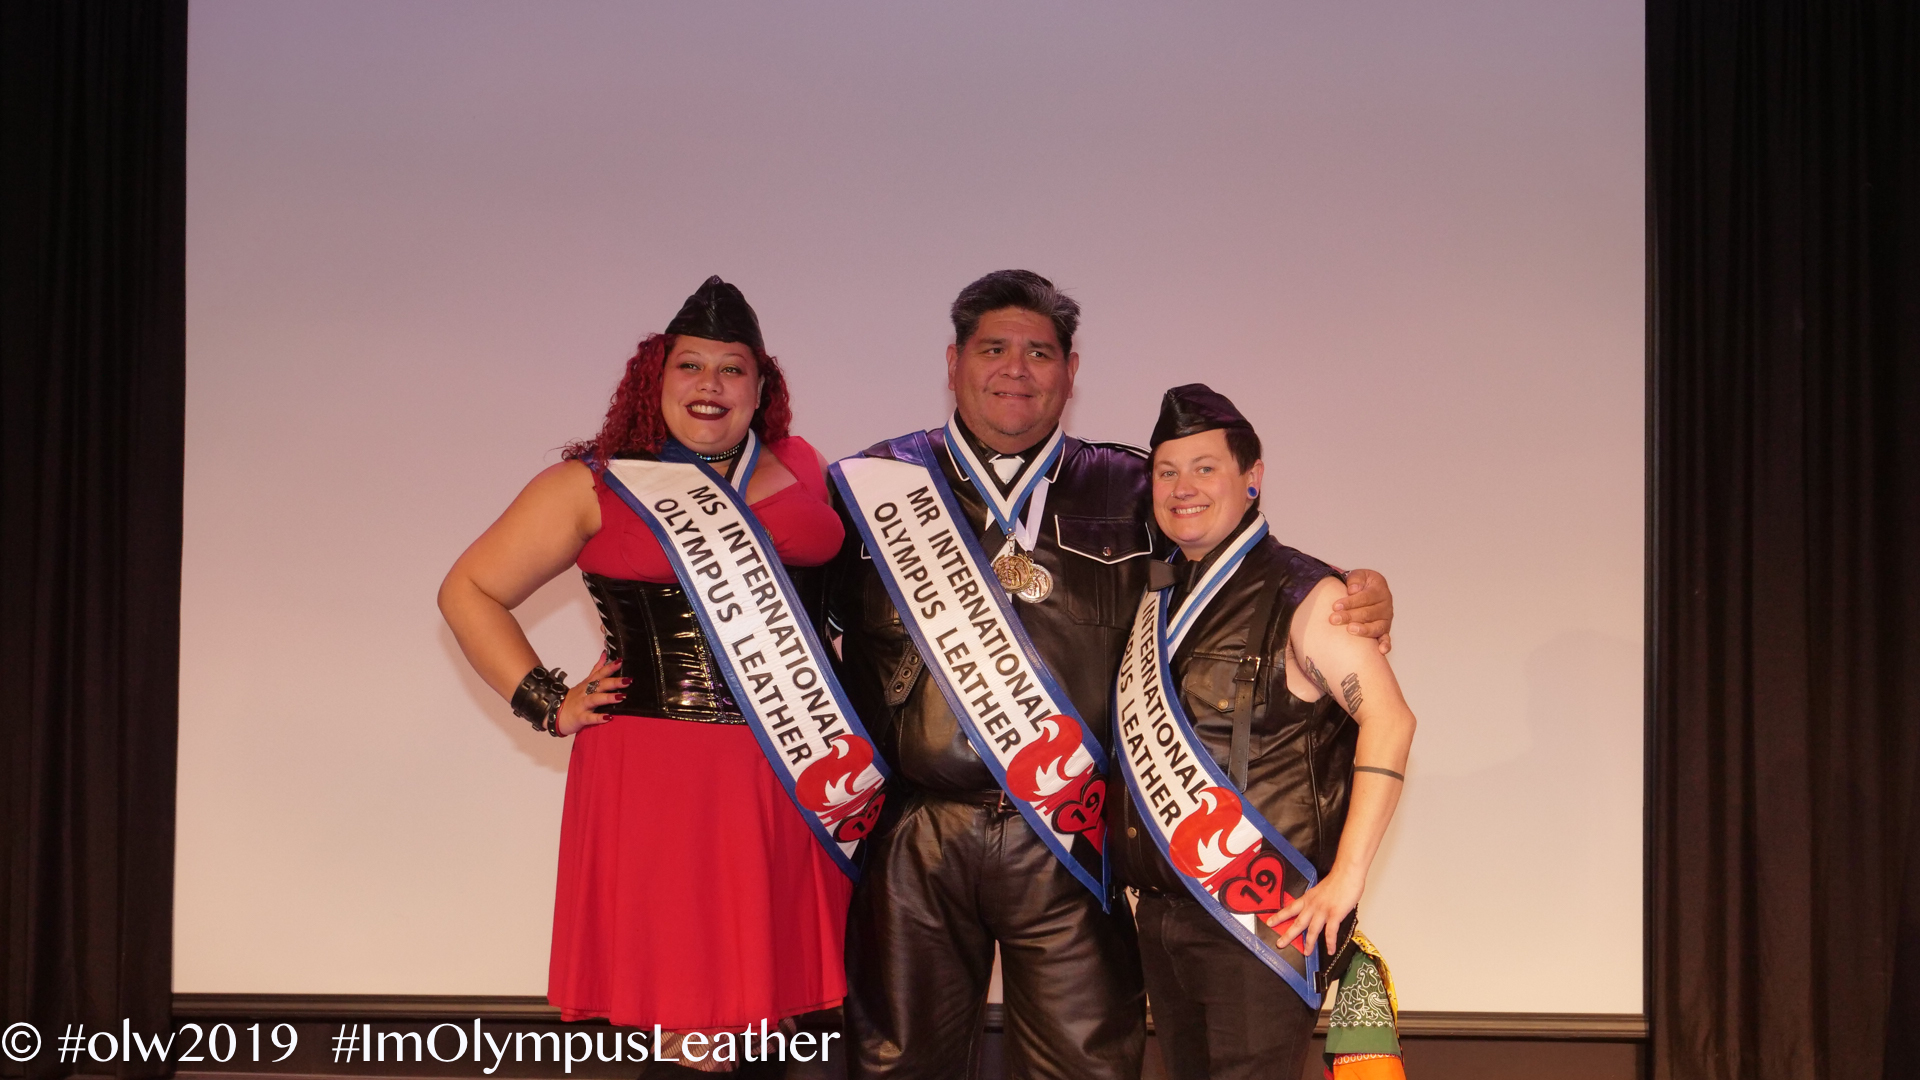 international olympus leather winners 2019